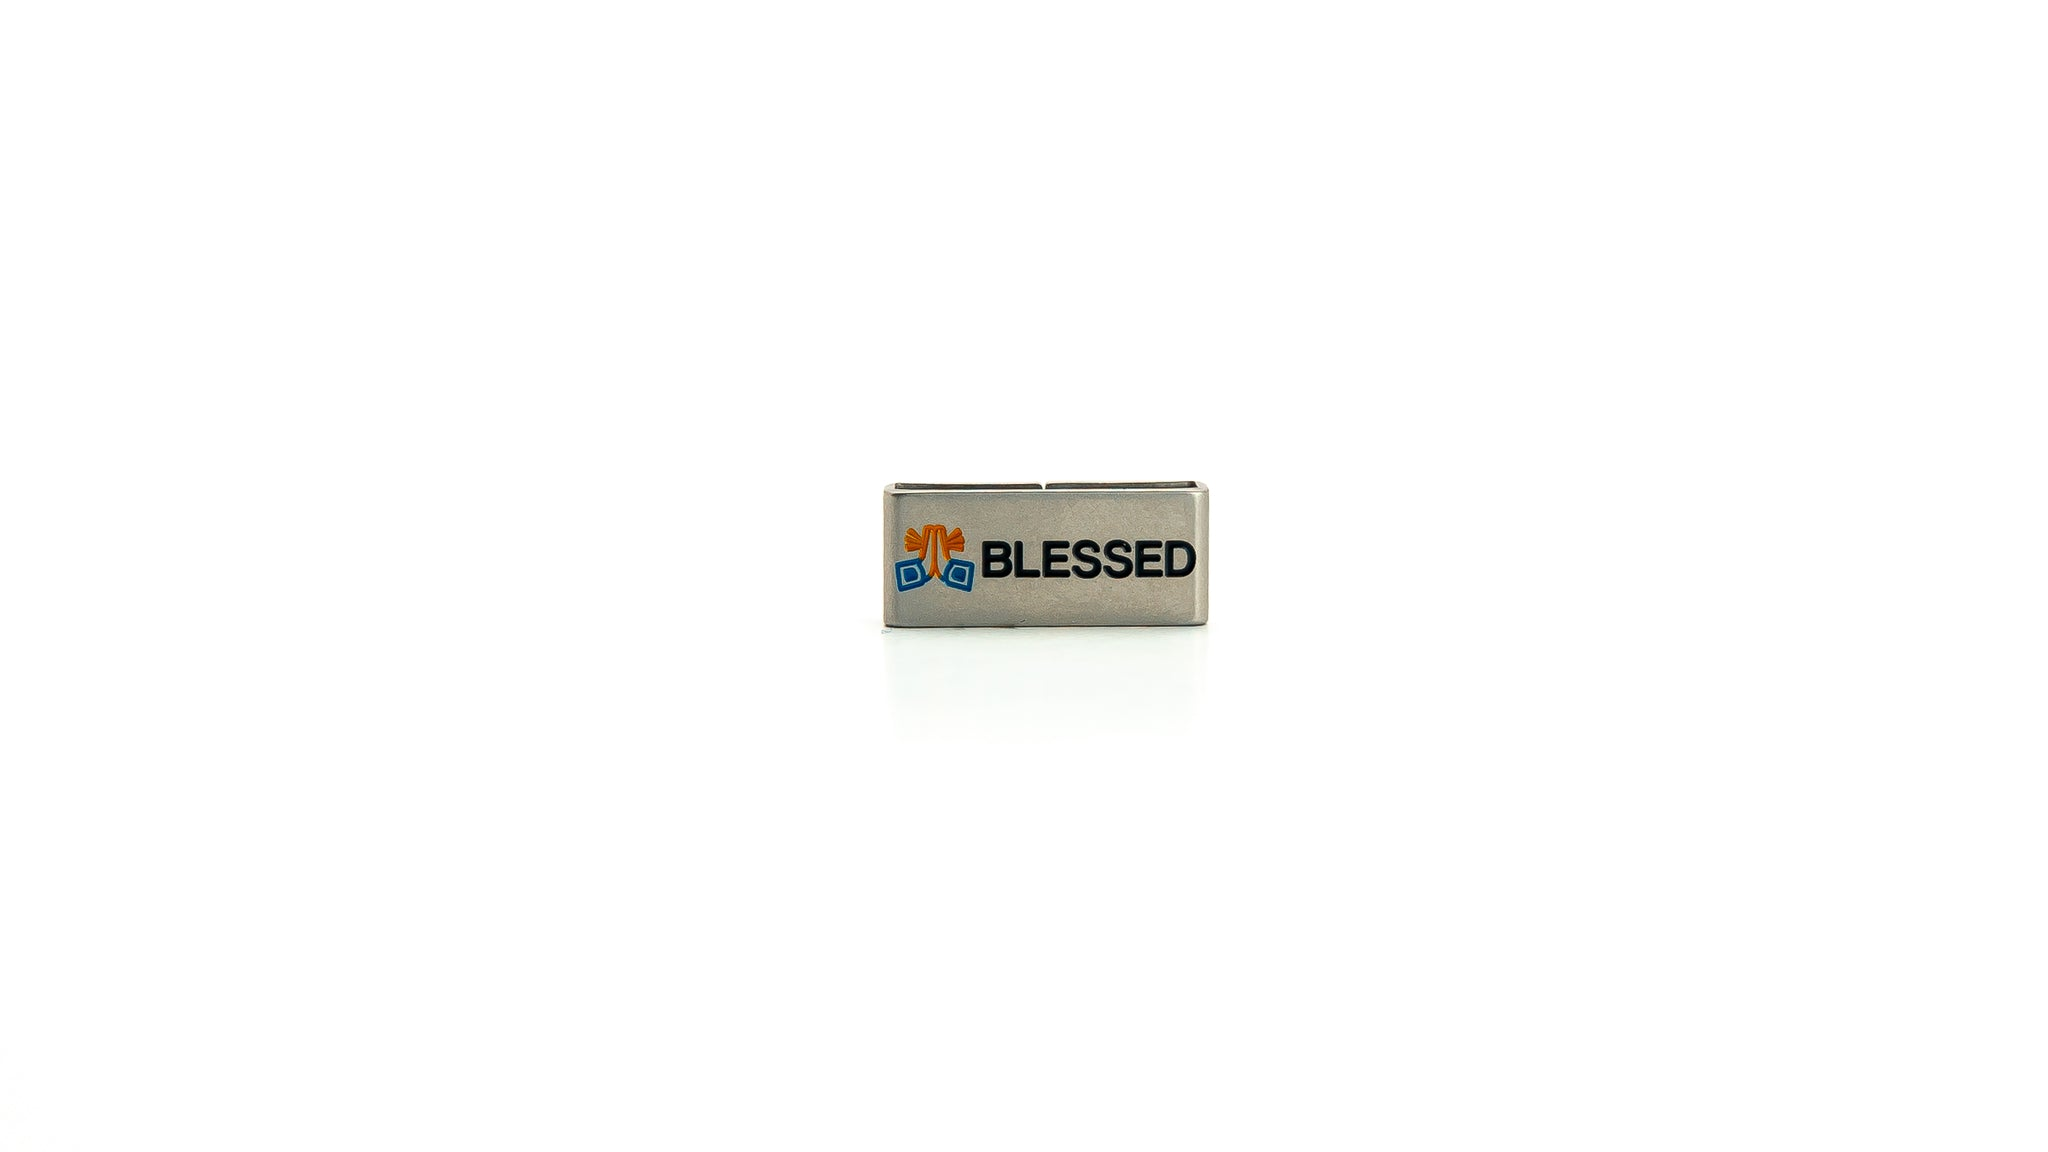 Blessed stainless steel tag. Religious jewlery. Radtagz collectible charms.